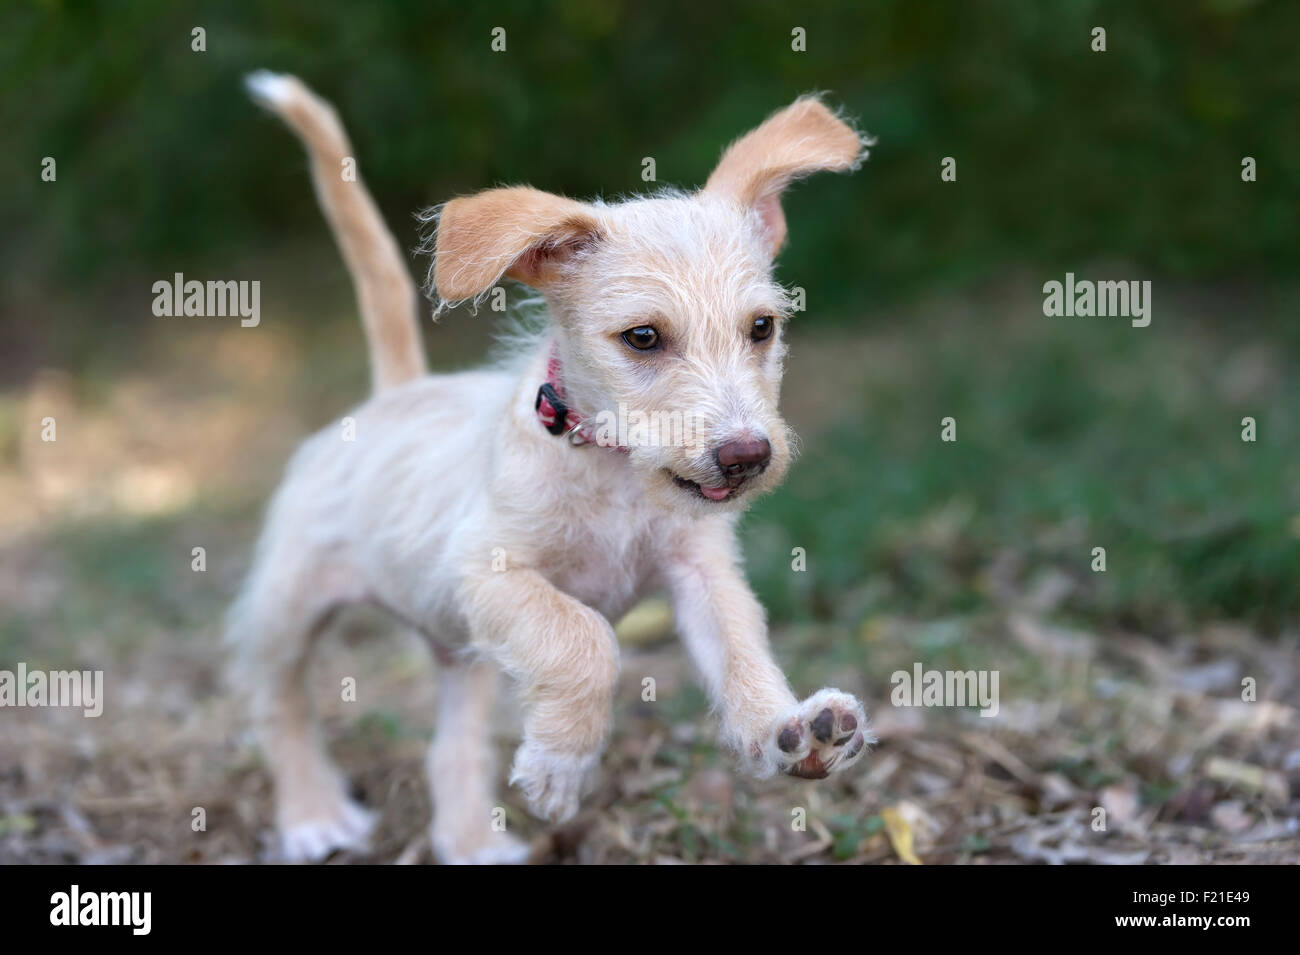 Cute Dog Running Is An Adorable Bouncing Puppy Running And Playing